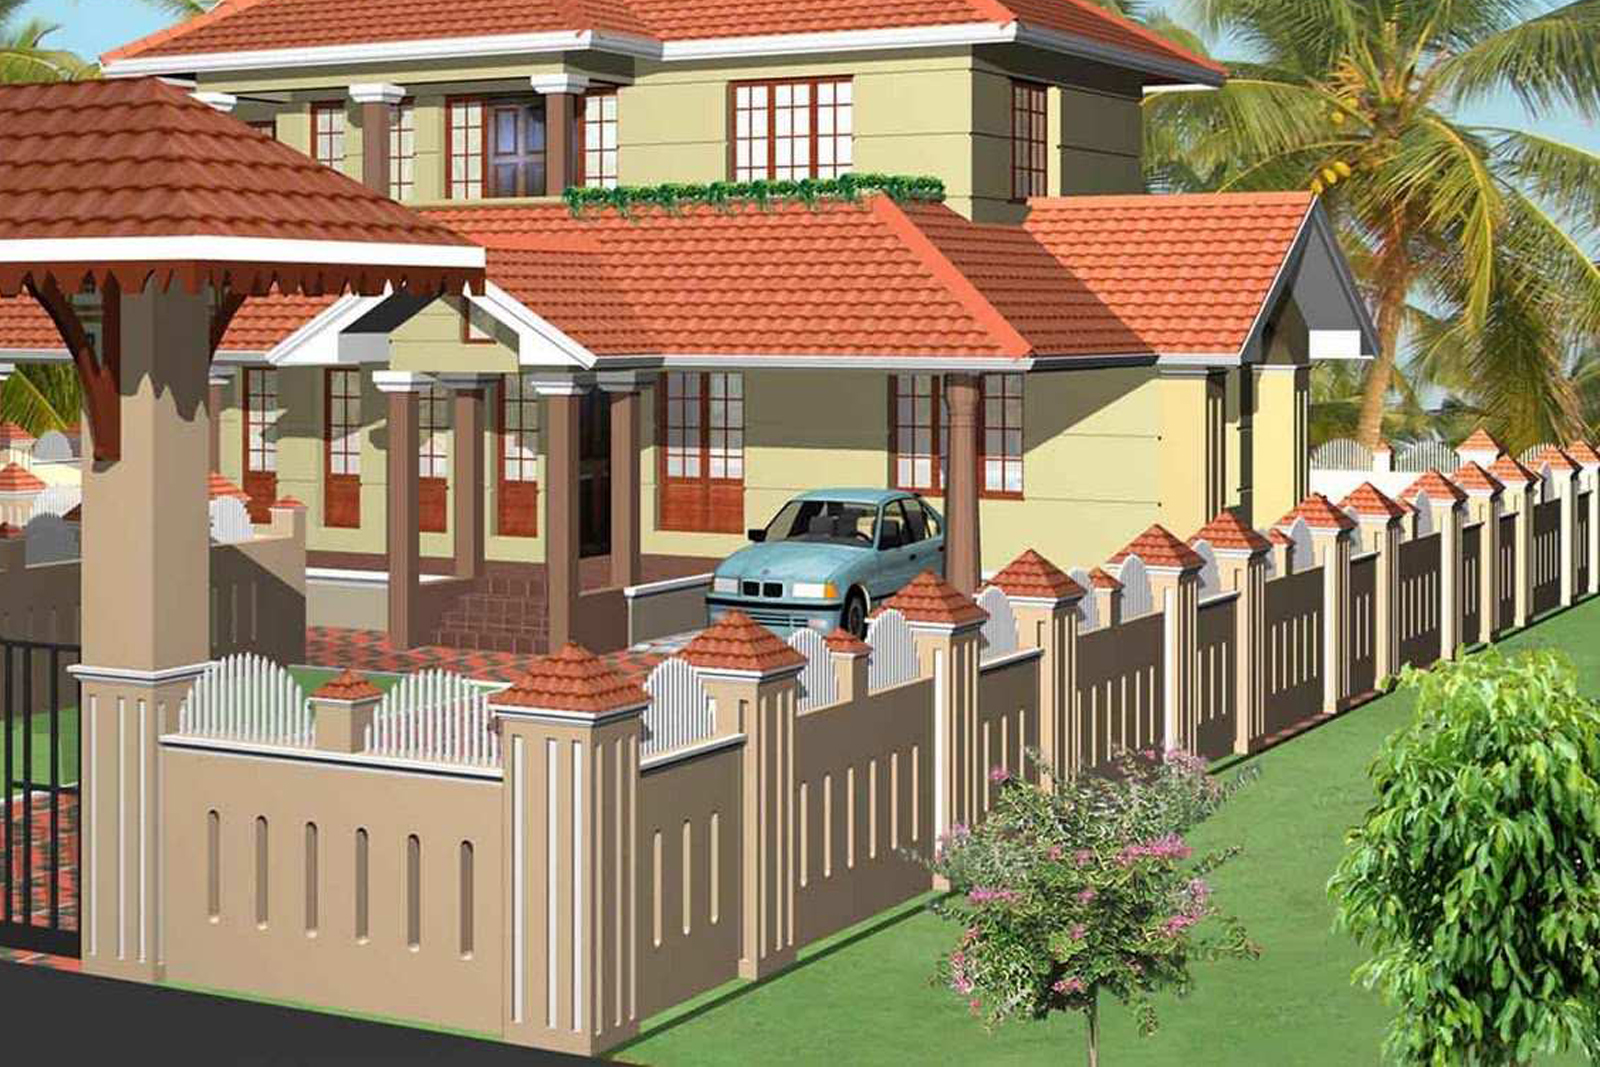 HouseInKerala.org: Design Concepts for Gate and Compound Wall